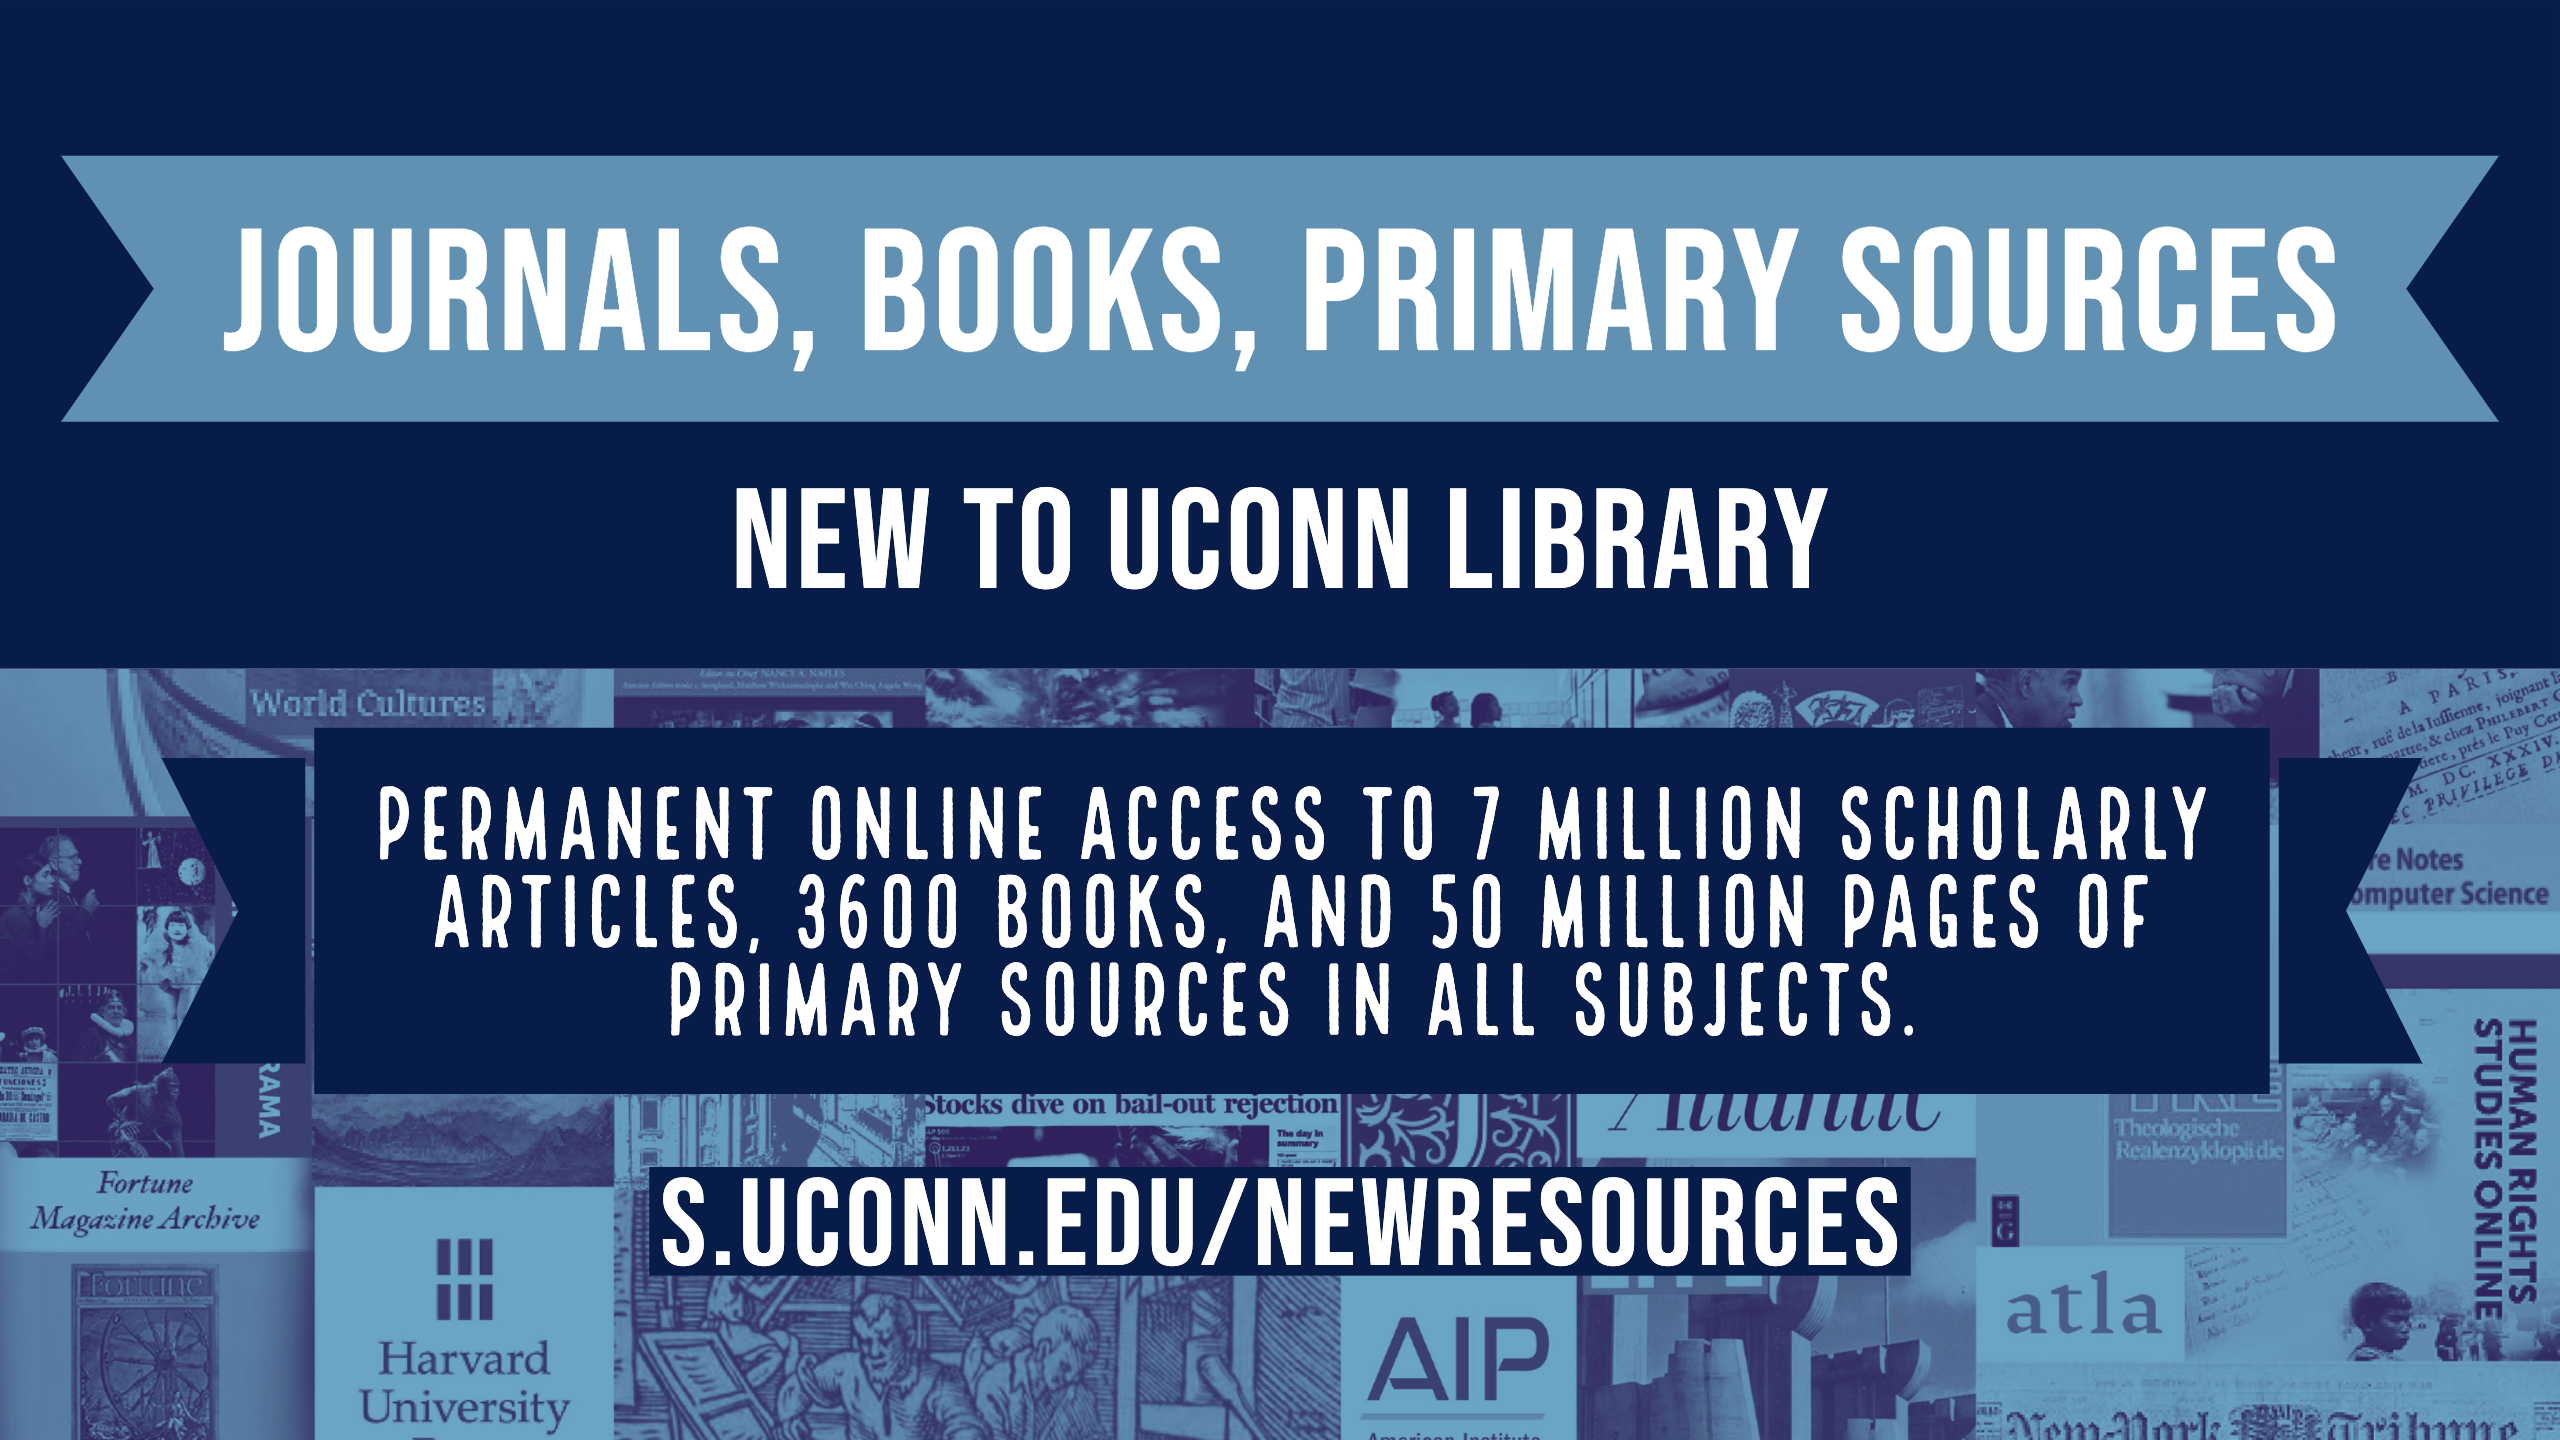 Journals, Books, Primary Sources. New to UConn Library. Permanent online access to 7 million scholarly articles, 3600 books, and 50 million pages of primary sources in all subjects. s.uconn.edu/newresources